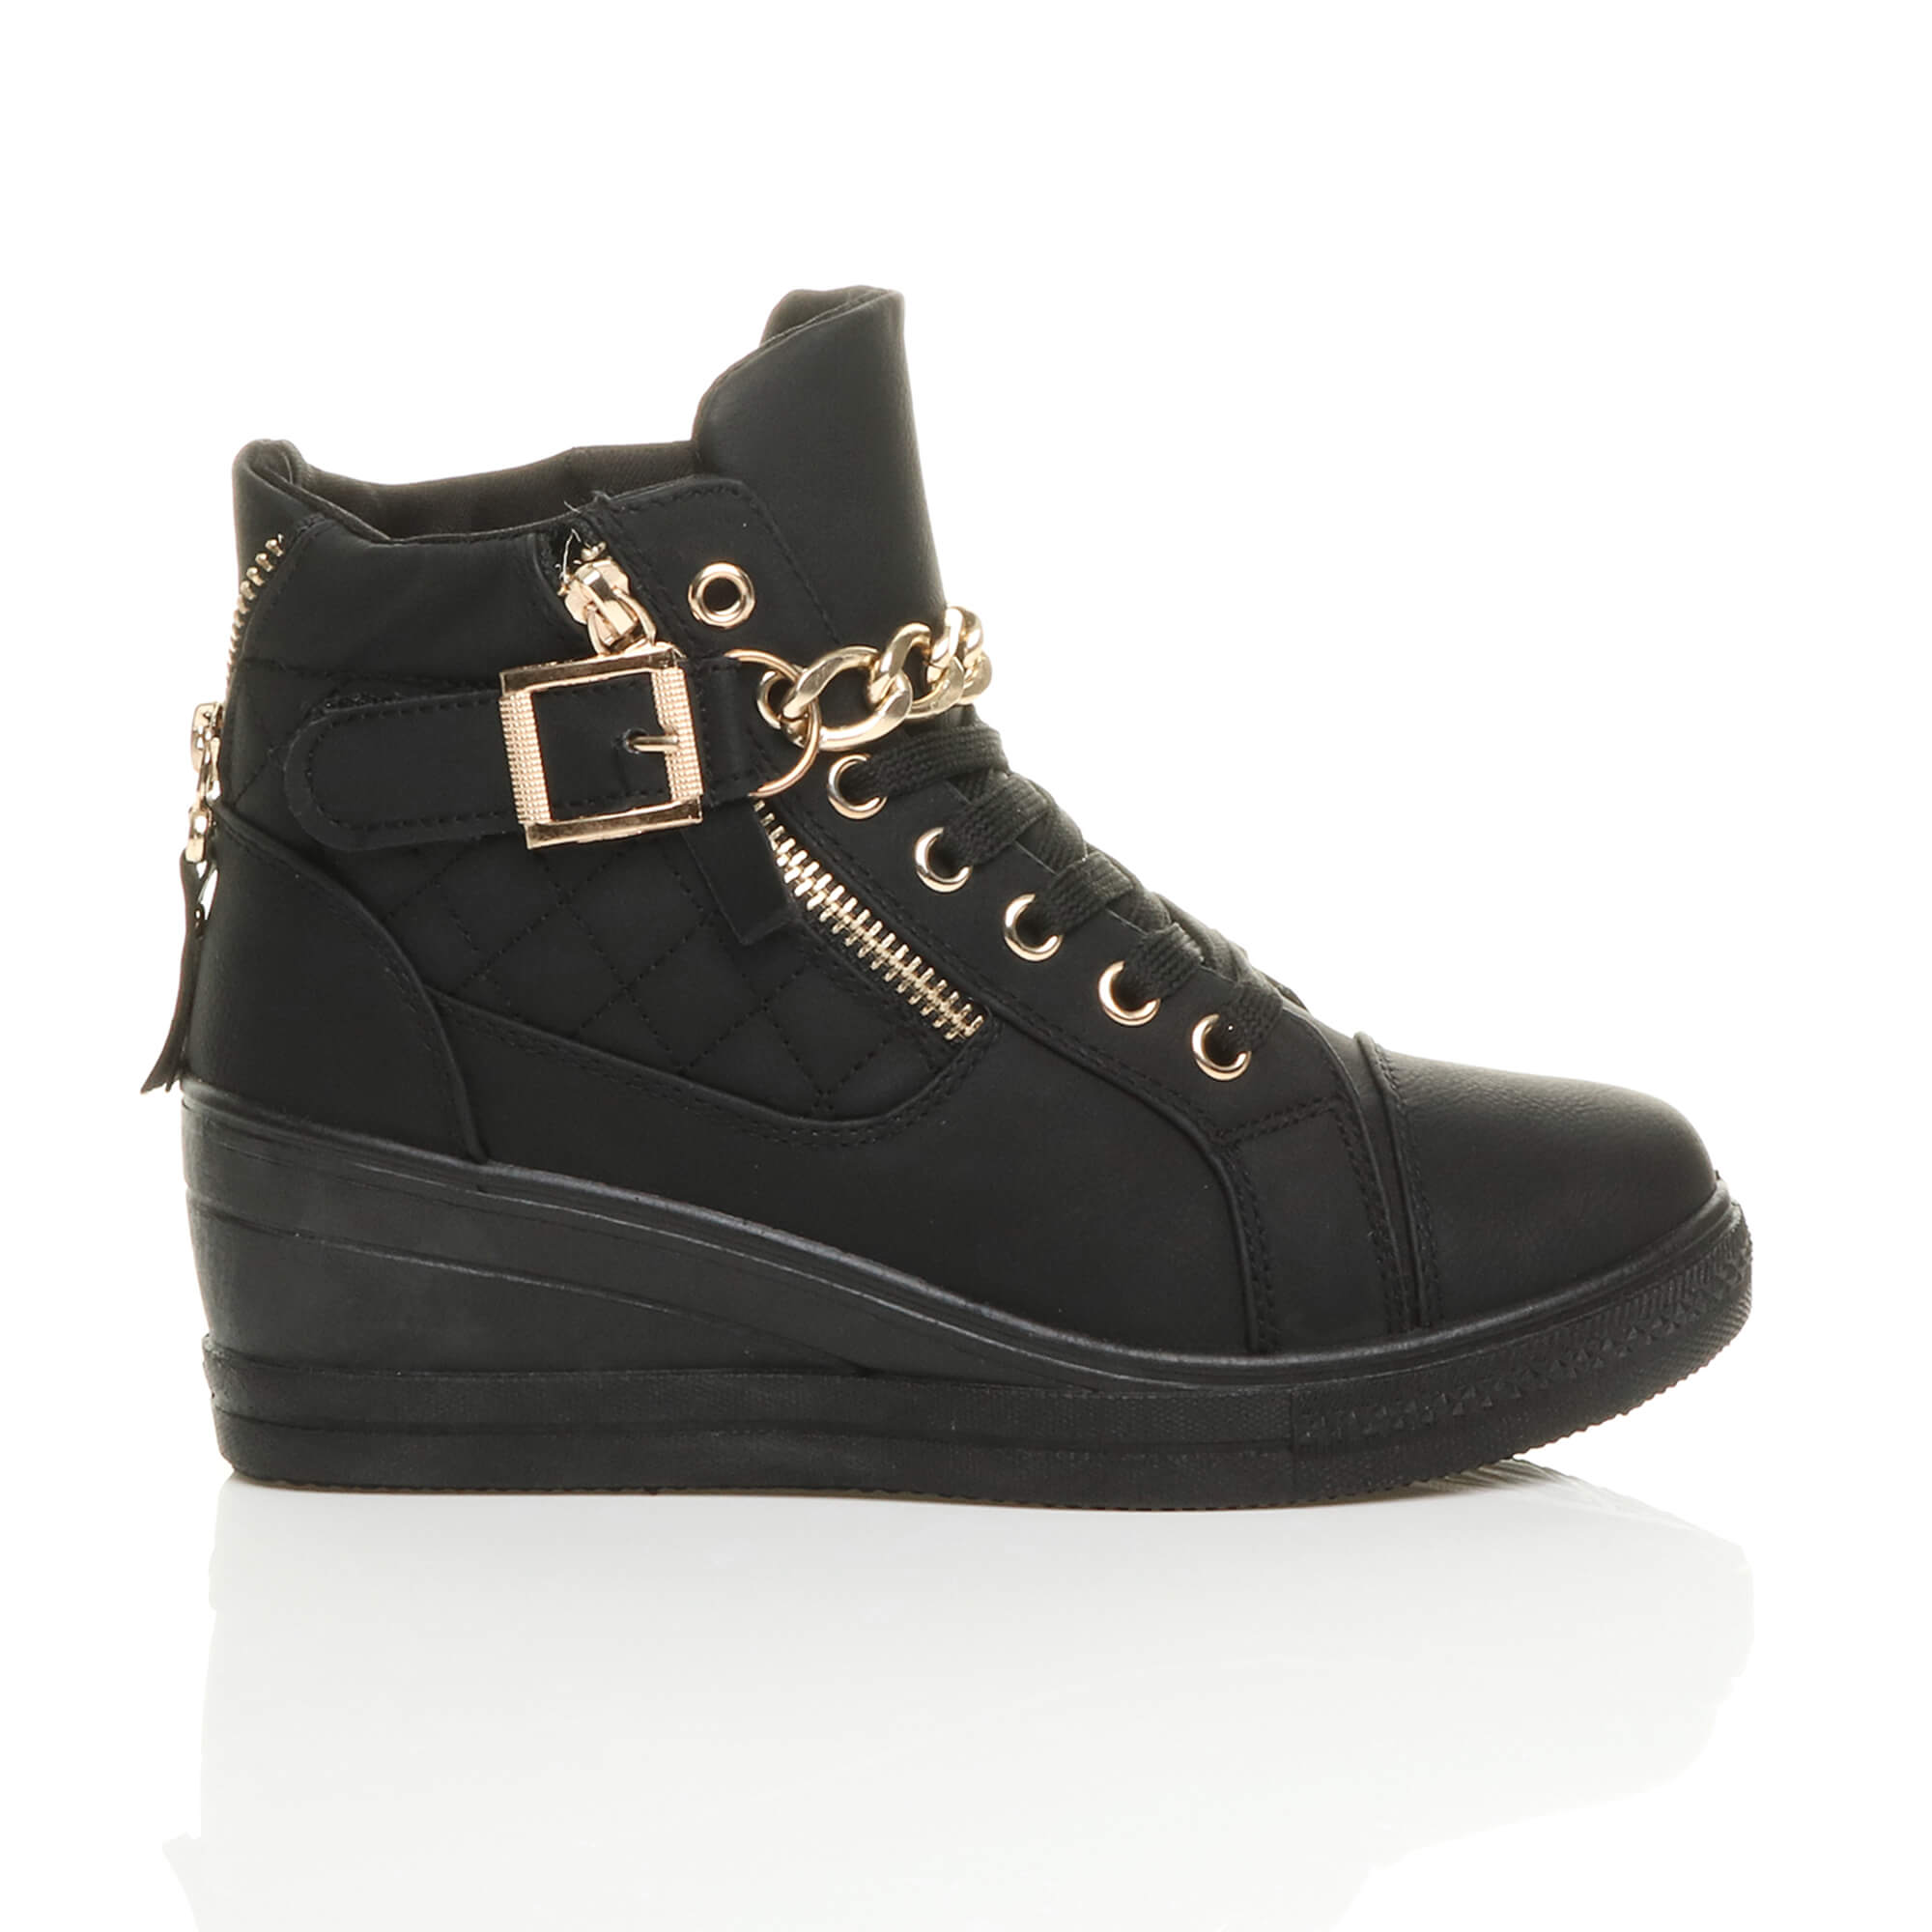 WOMENS LADIES MID HEEL WEDGE PLATFORM CHAIN LACE UP ANKLE TRAINER BOOT SIZE 3 36